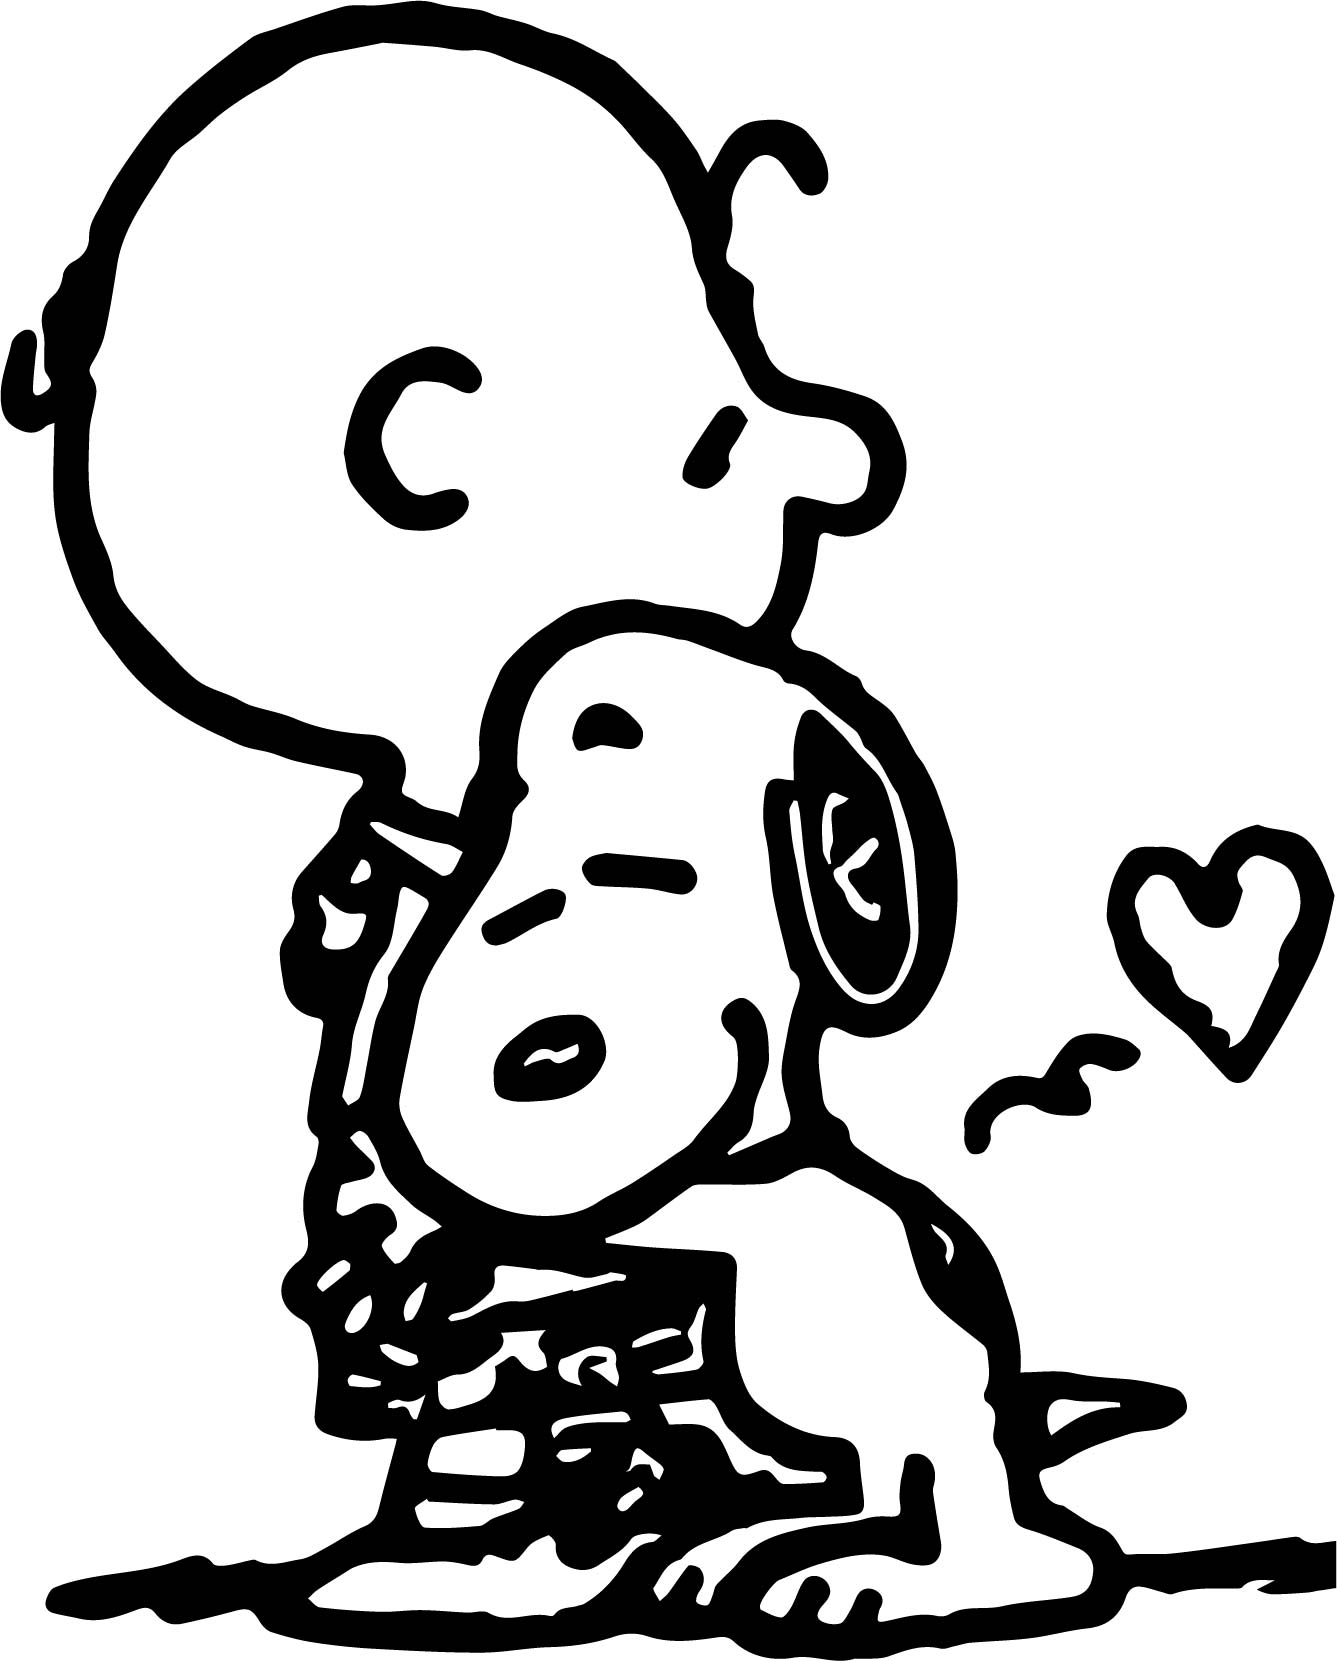 snoopy coloring pages - charlie brown snoopy coloring page